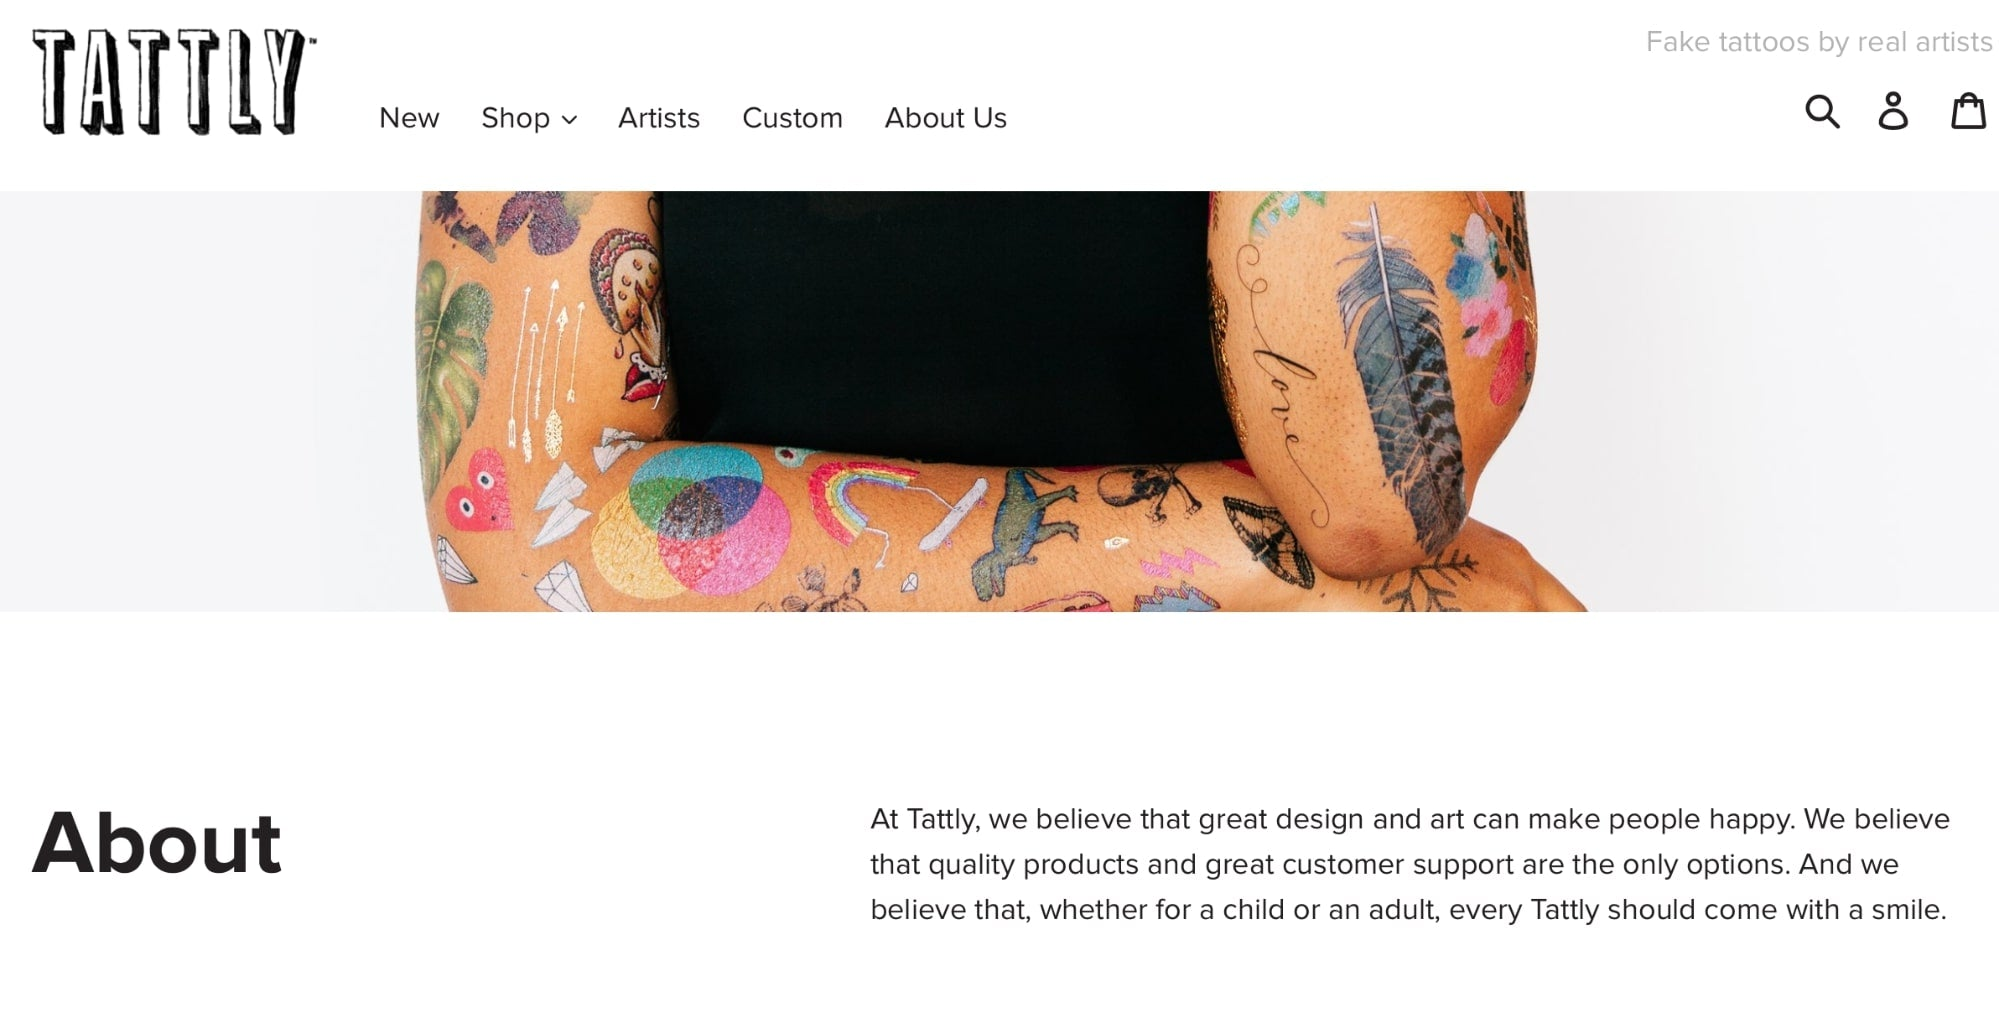 tattly unique selling proposition